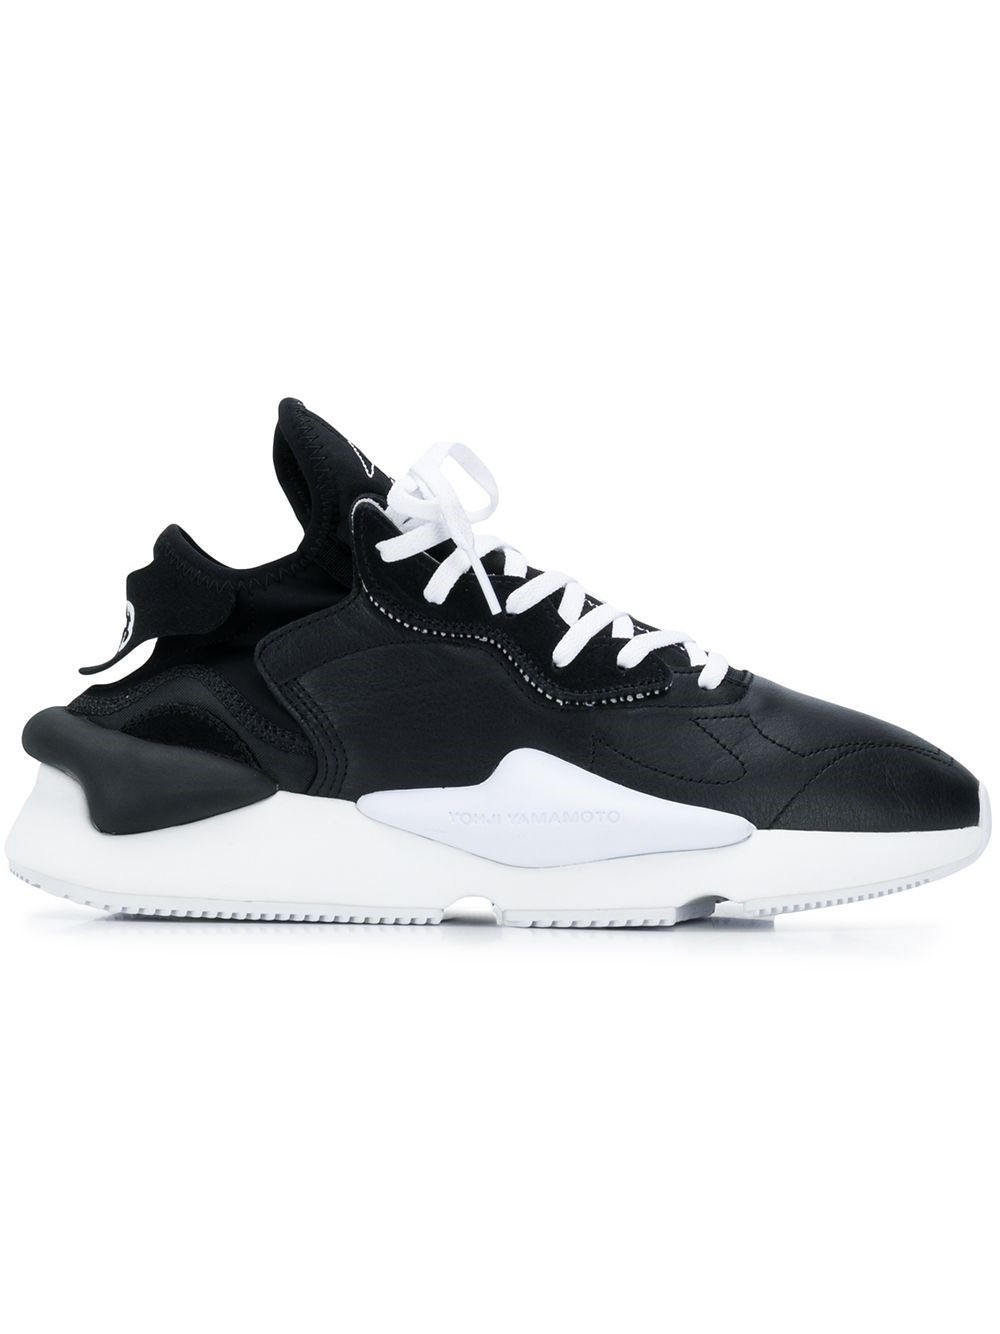 bc39b8debd31 y-3 KAIWA SNEAKERS available on montiboutique.com - 27133